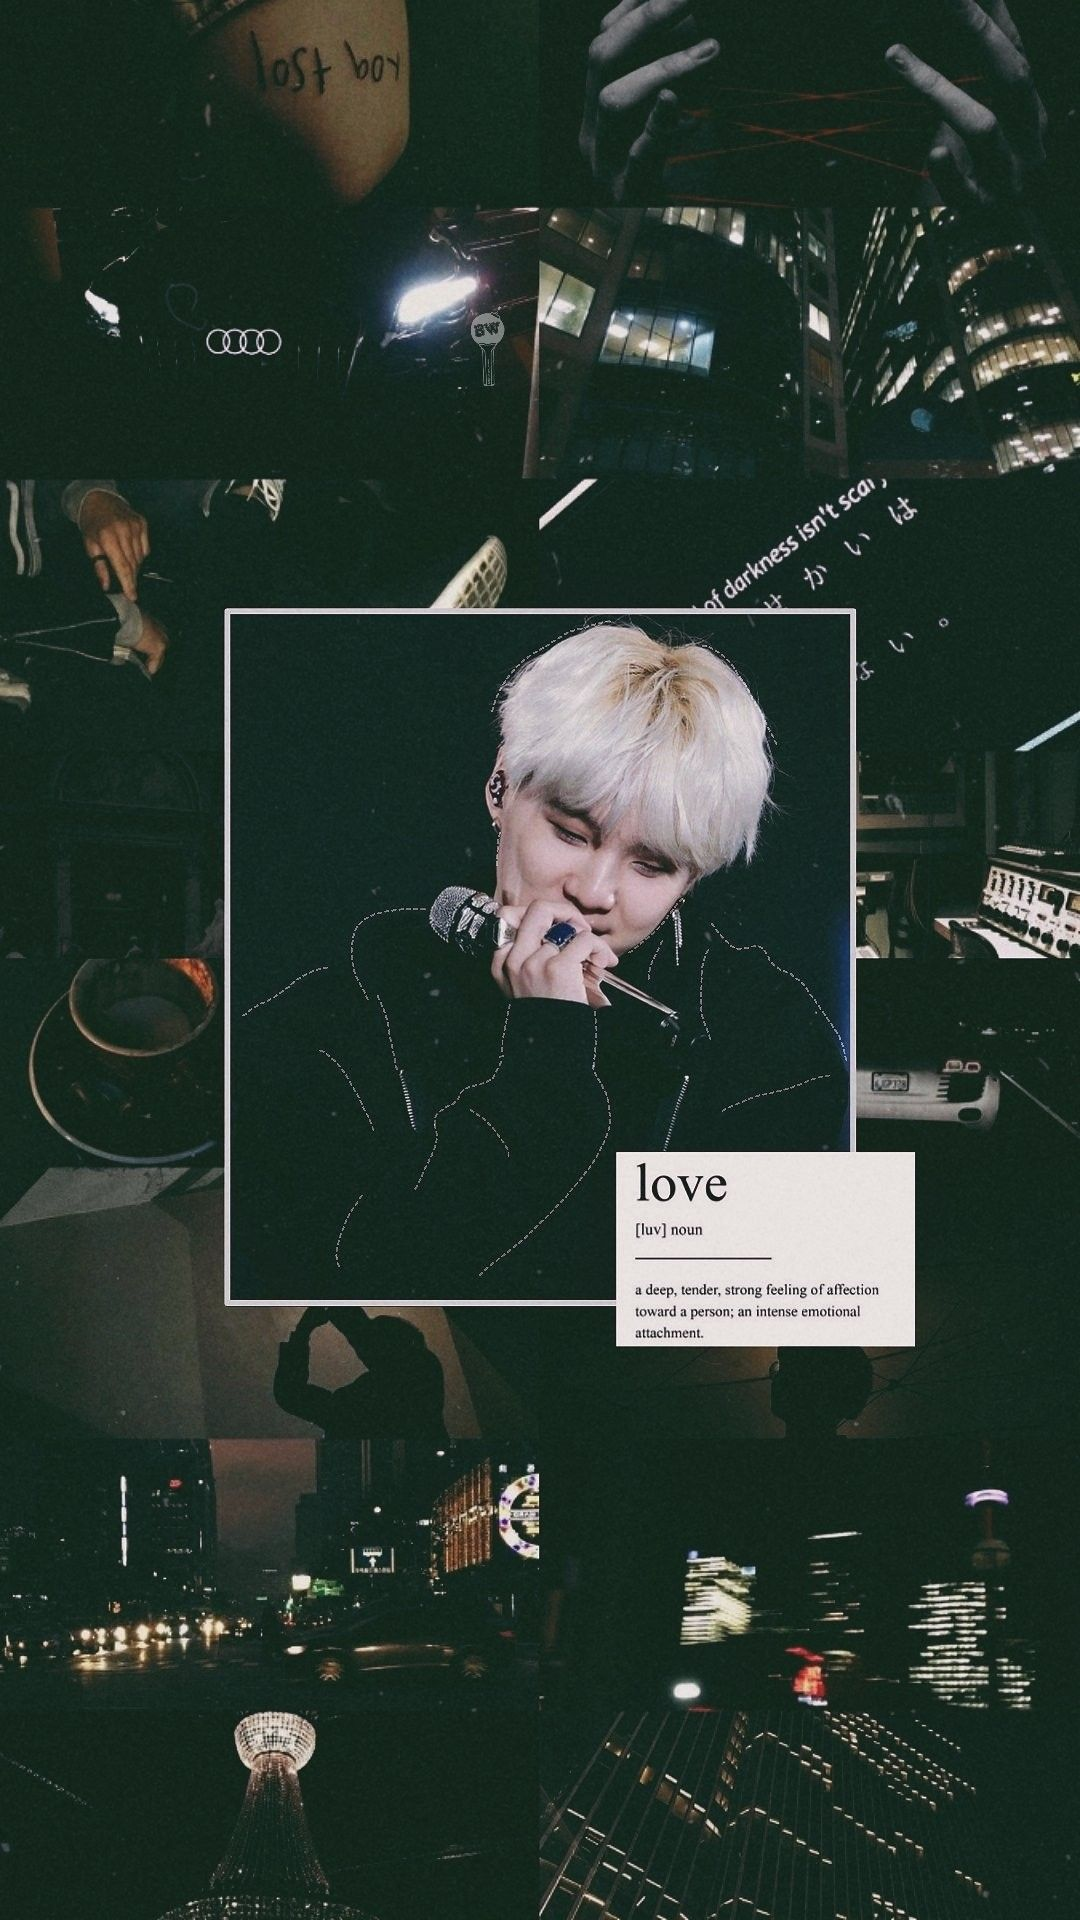 Yoongi Aesthetic Wallpaper Credits To Twitter Btswallppers C Yoongi Suga Min Yoongi Wallpaper Bts Aesthetic Wallpaper For Phone Iphone Wallpaper Bts